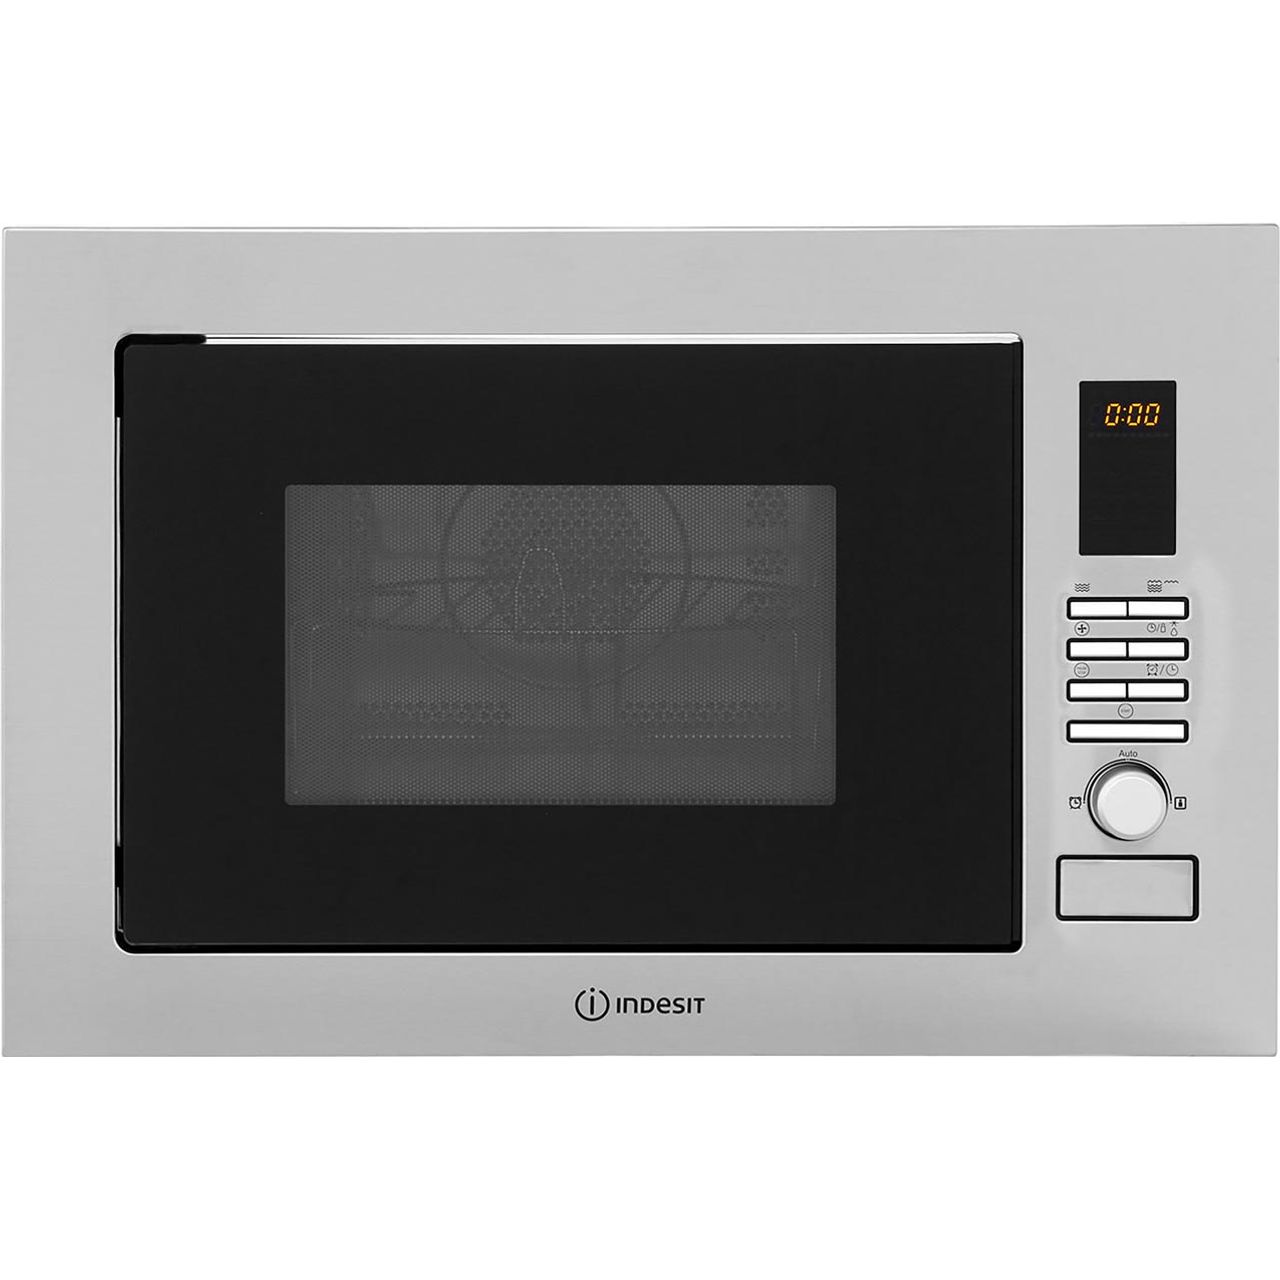 Combination Microwave Oven Indesit Mwi222 2x Built In Combination Microwave Oven Stainless Steel